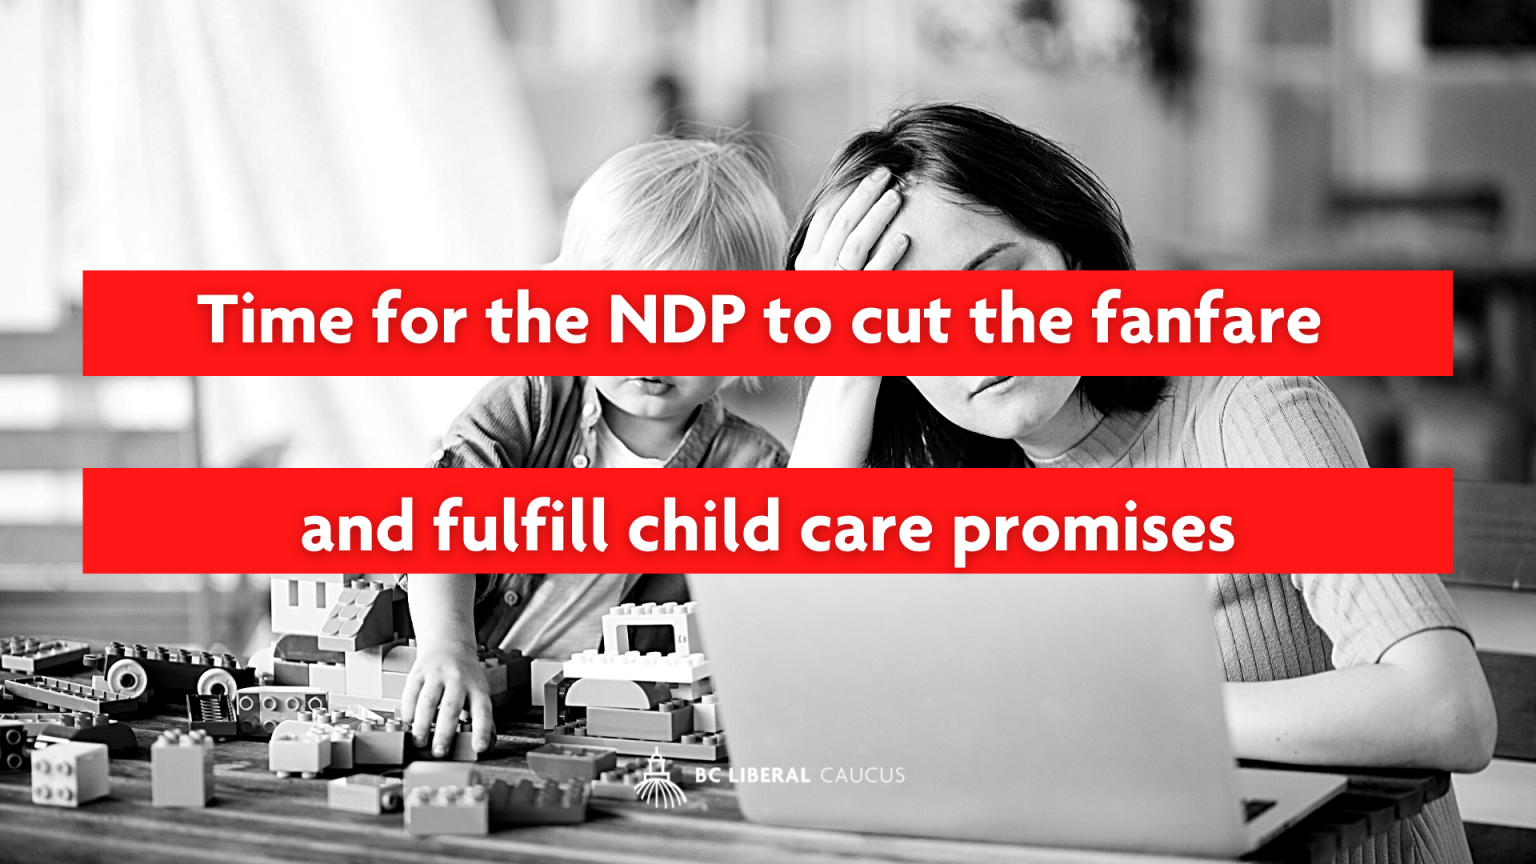 Time for the NDP to cut the fanfare and fulfill child care promises